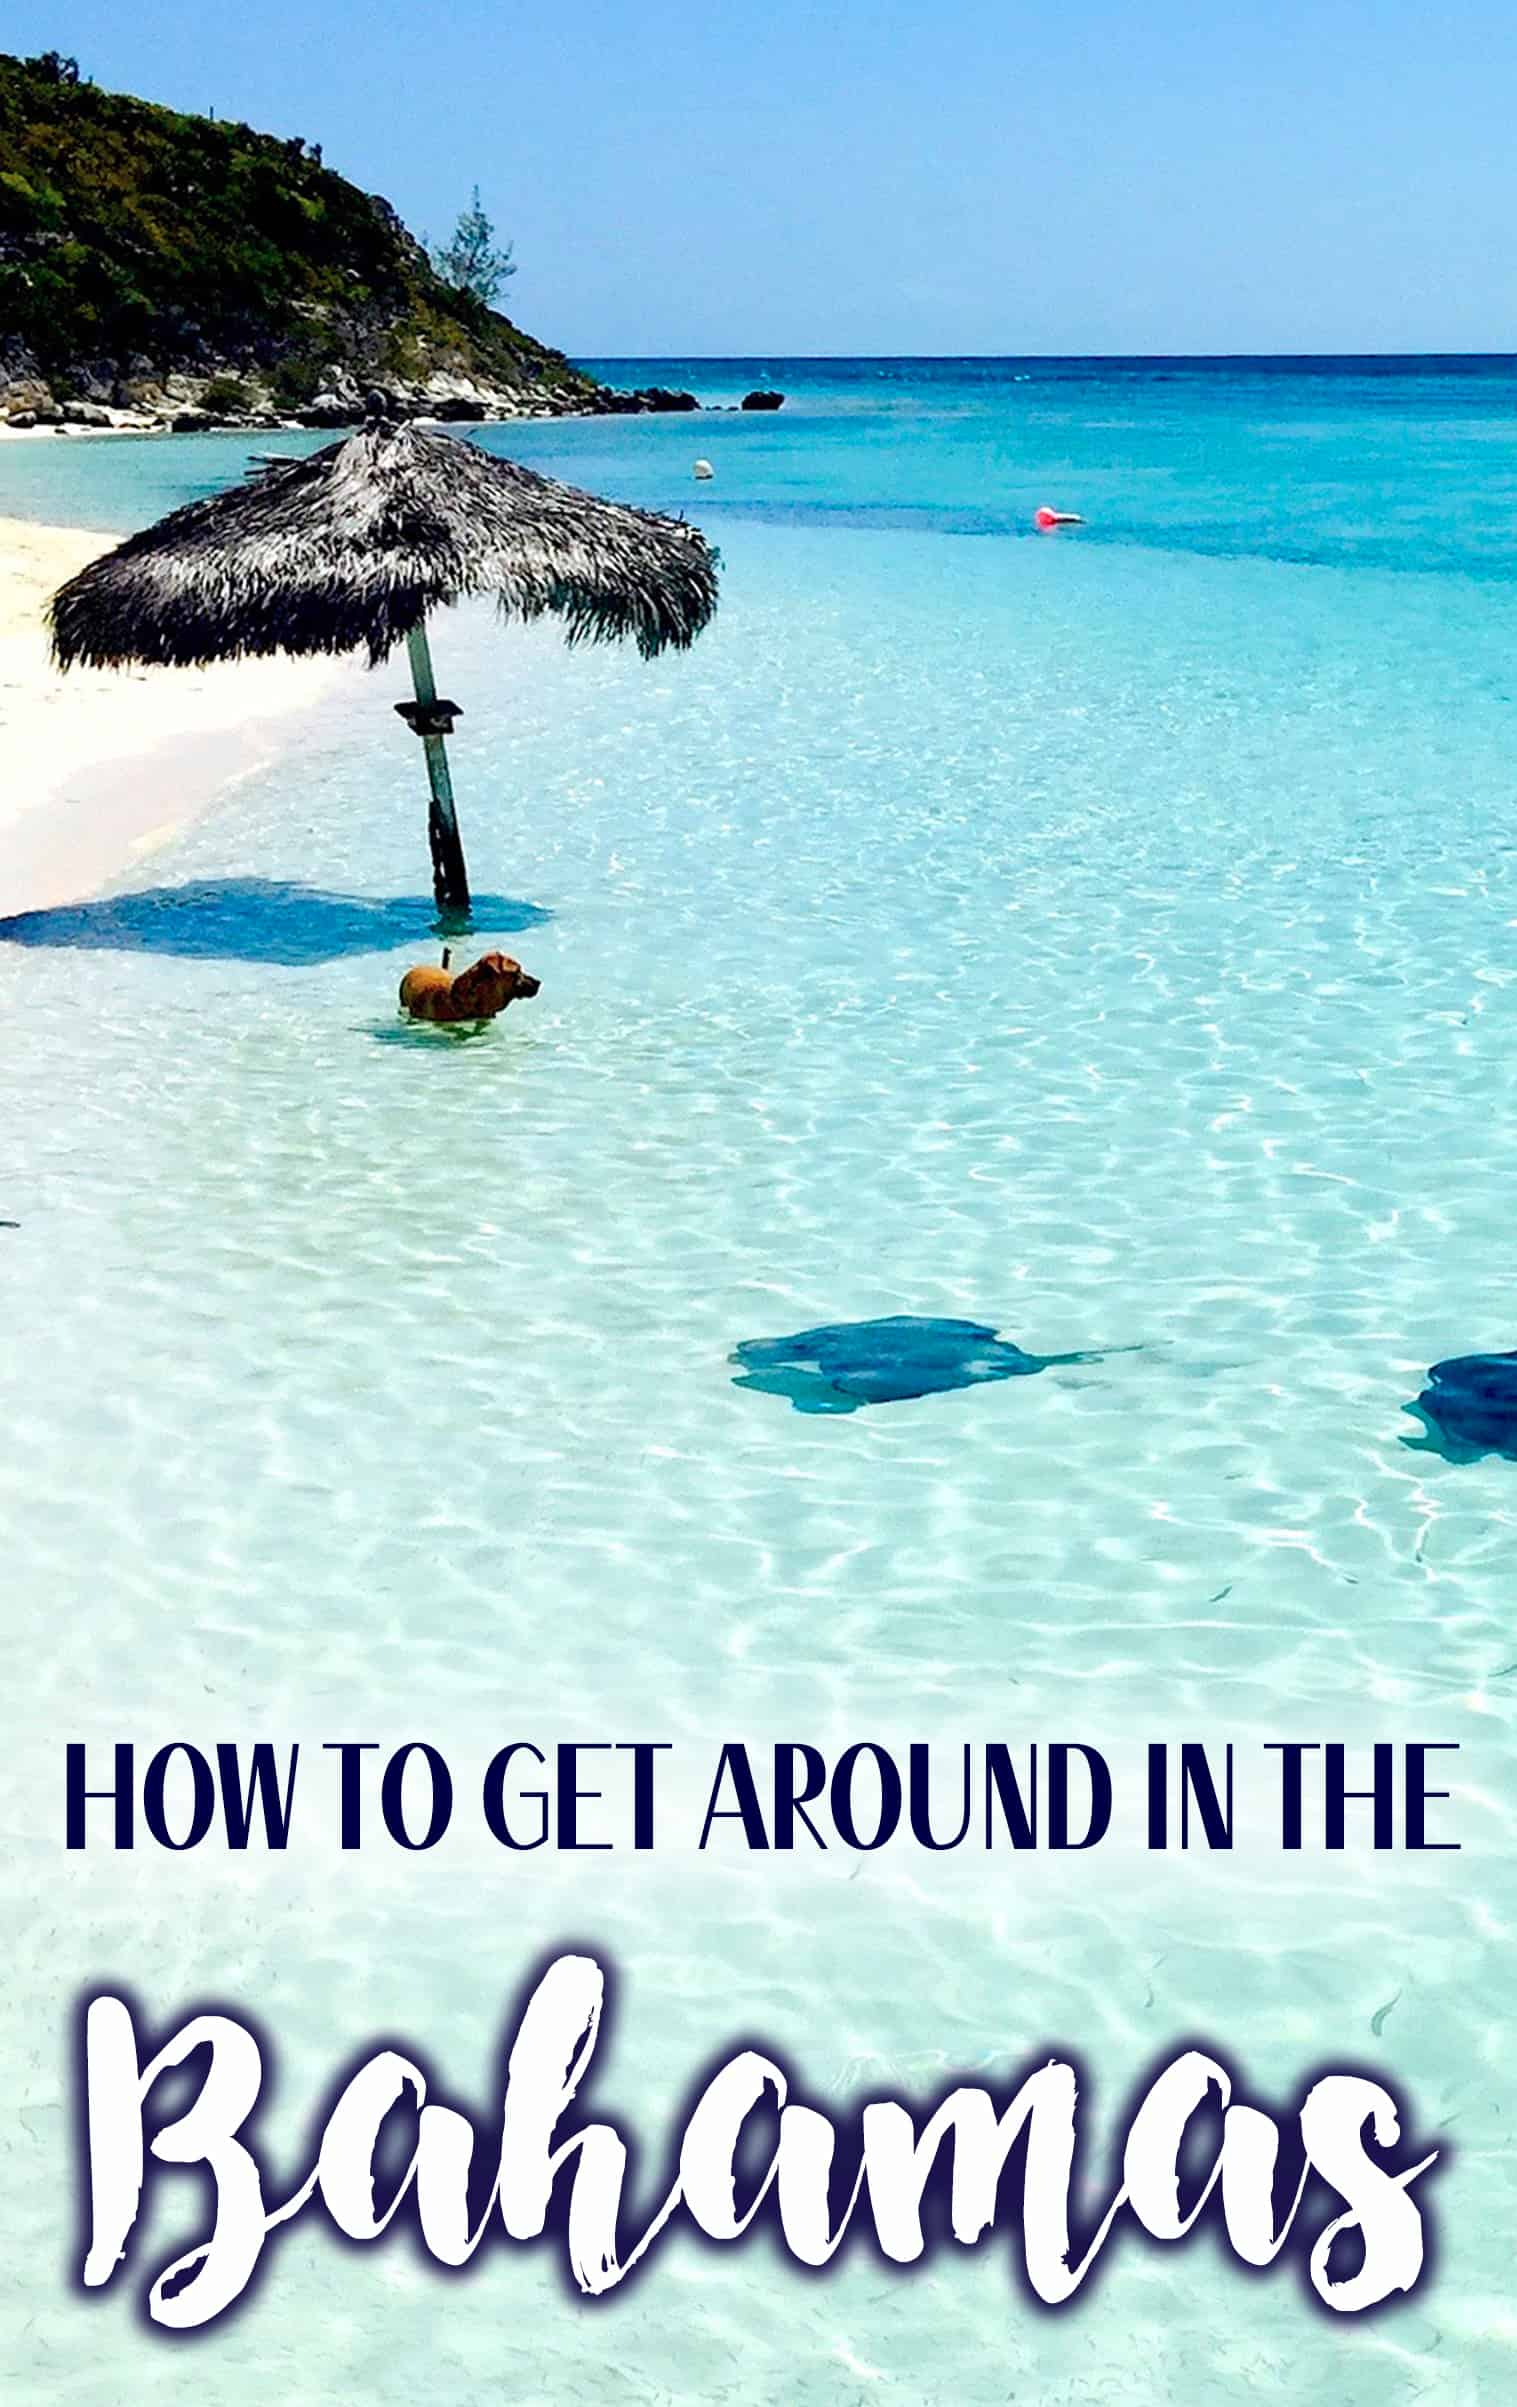 HOW TO GET AROUND IN THE BAHAMAS